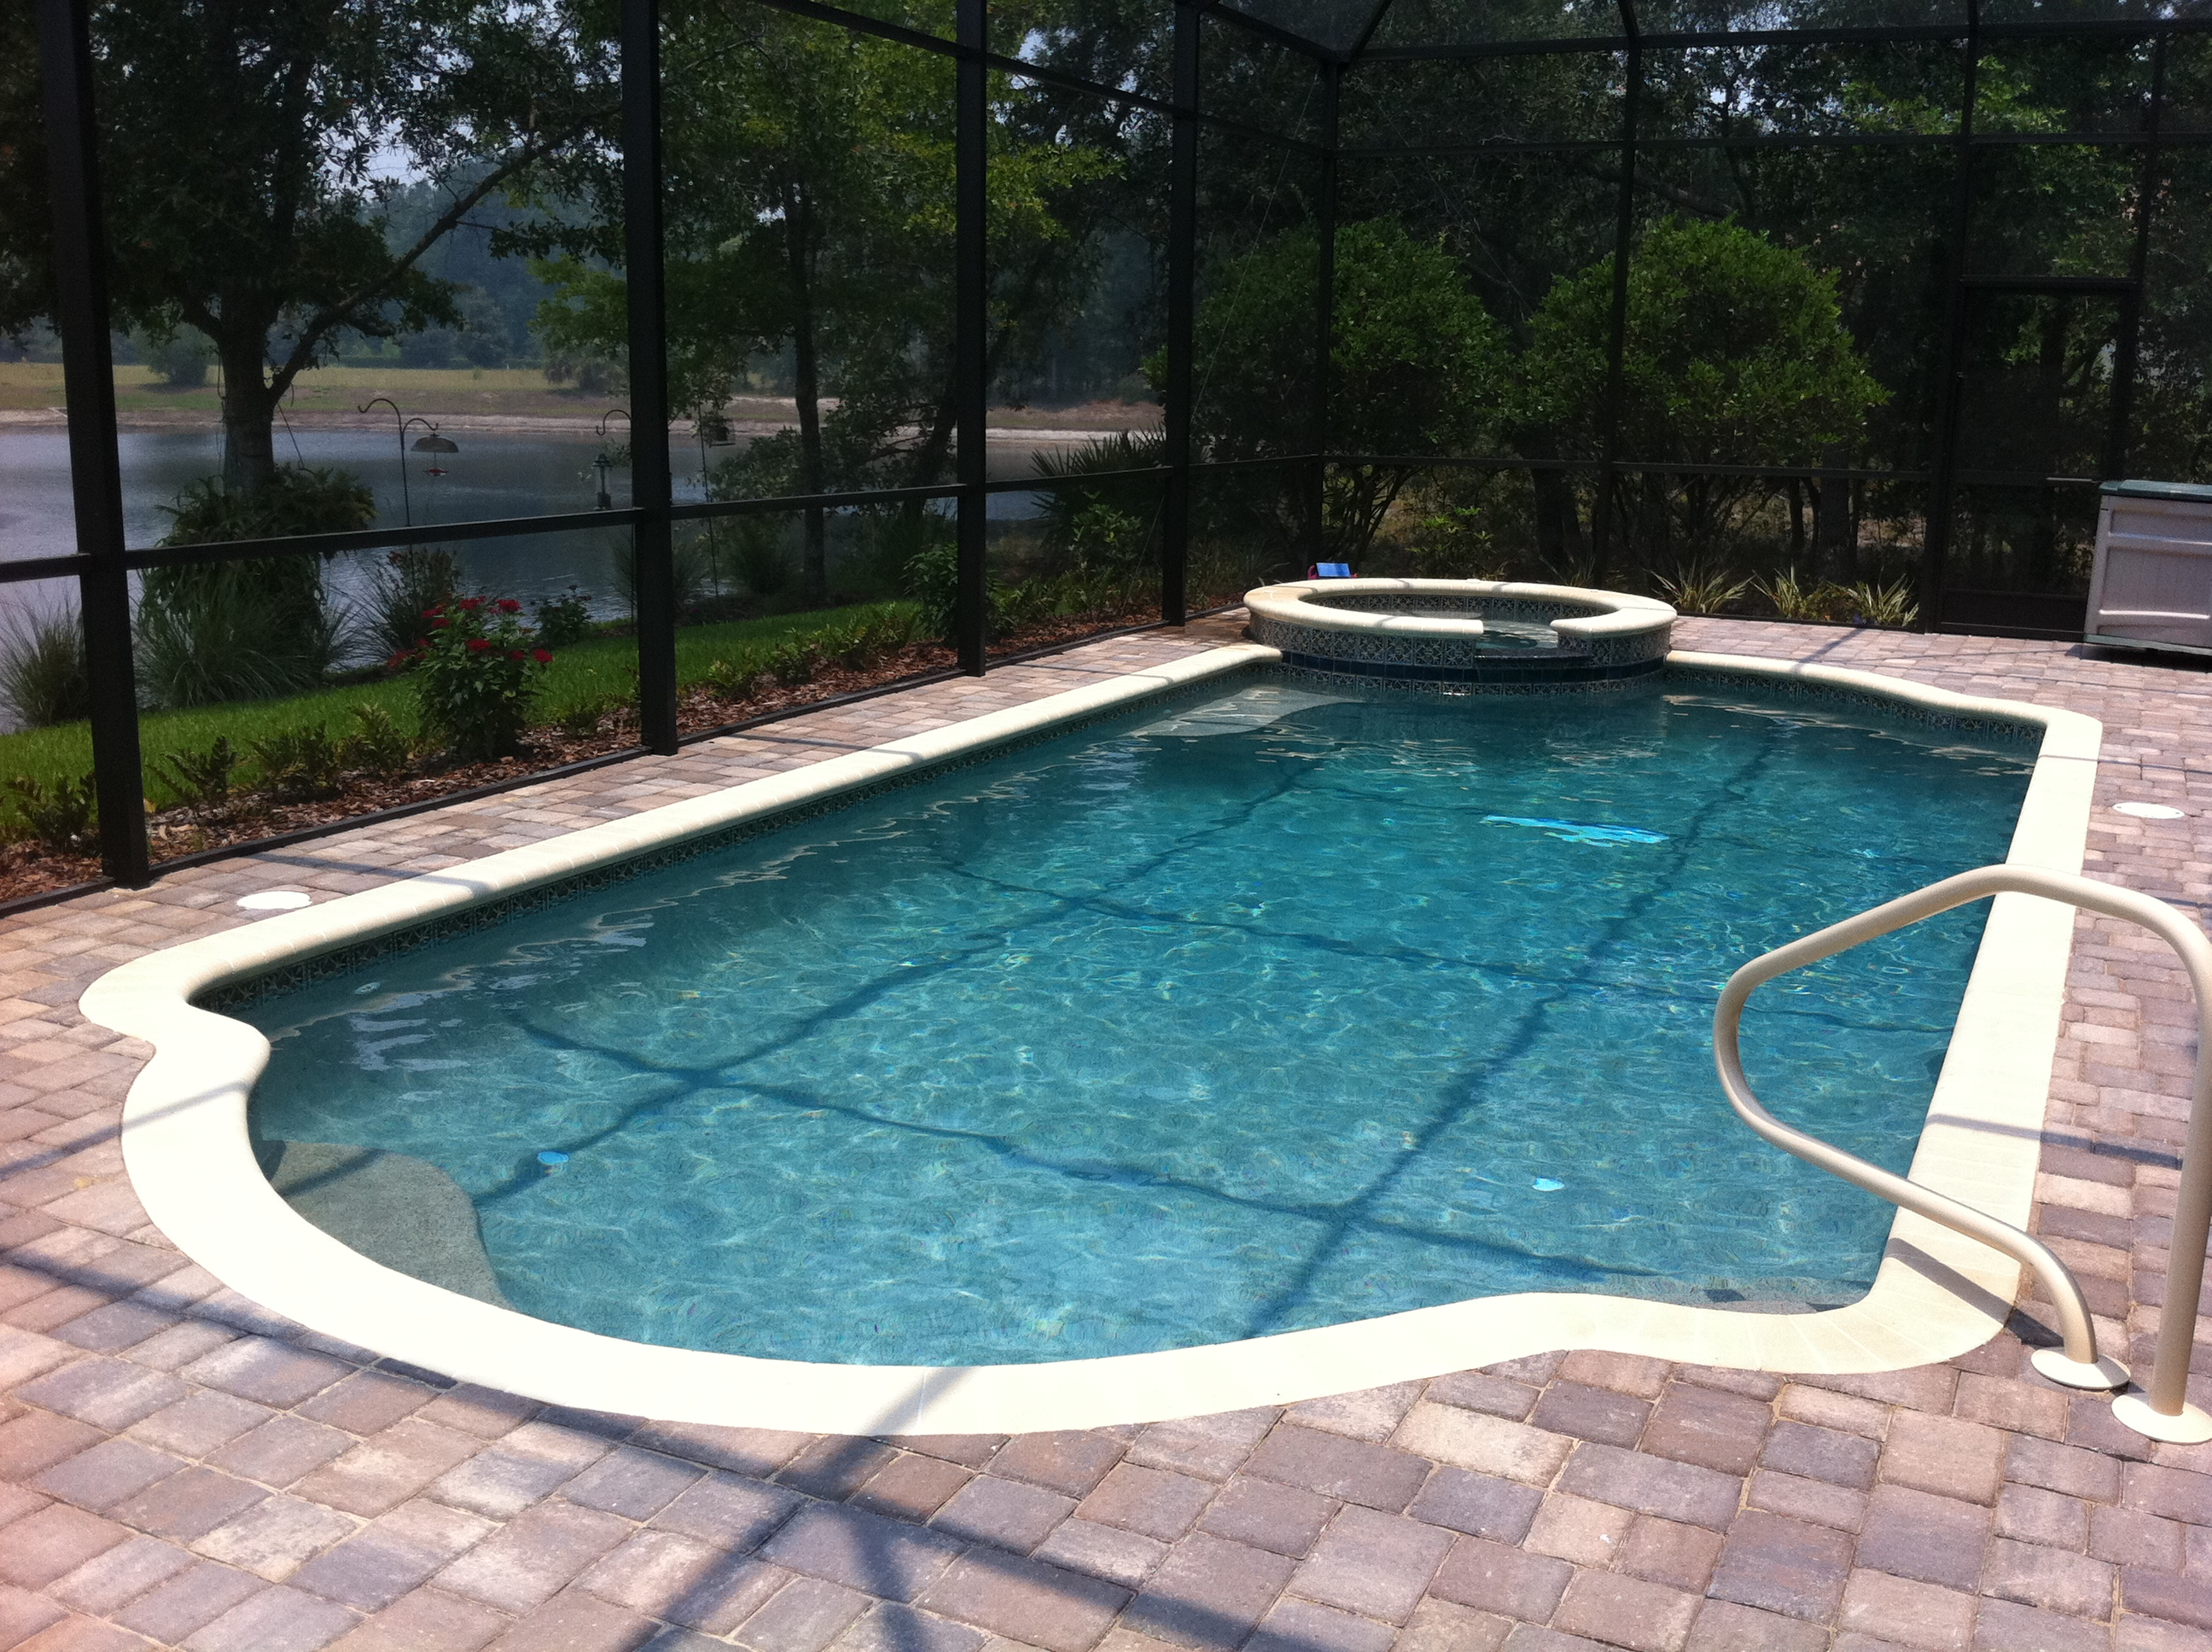 Swimming pool and spa photos jacksonville atlantic beach for Pool design jacksonville fl